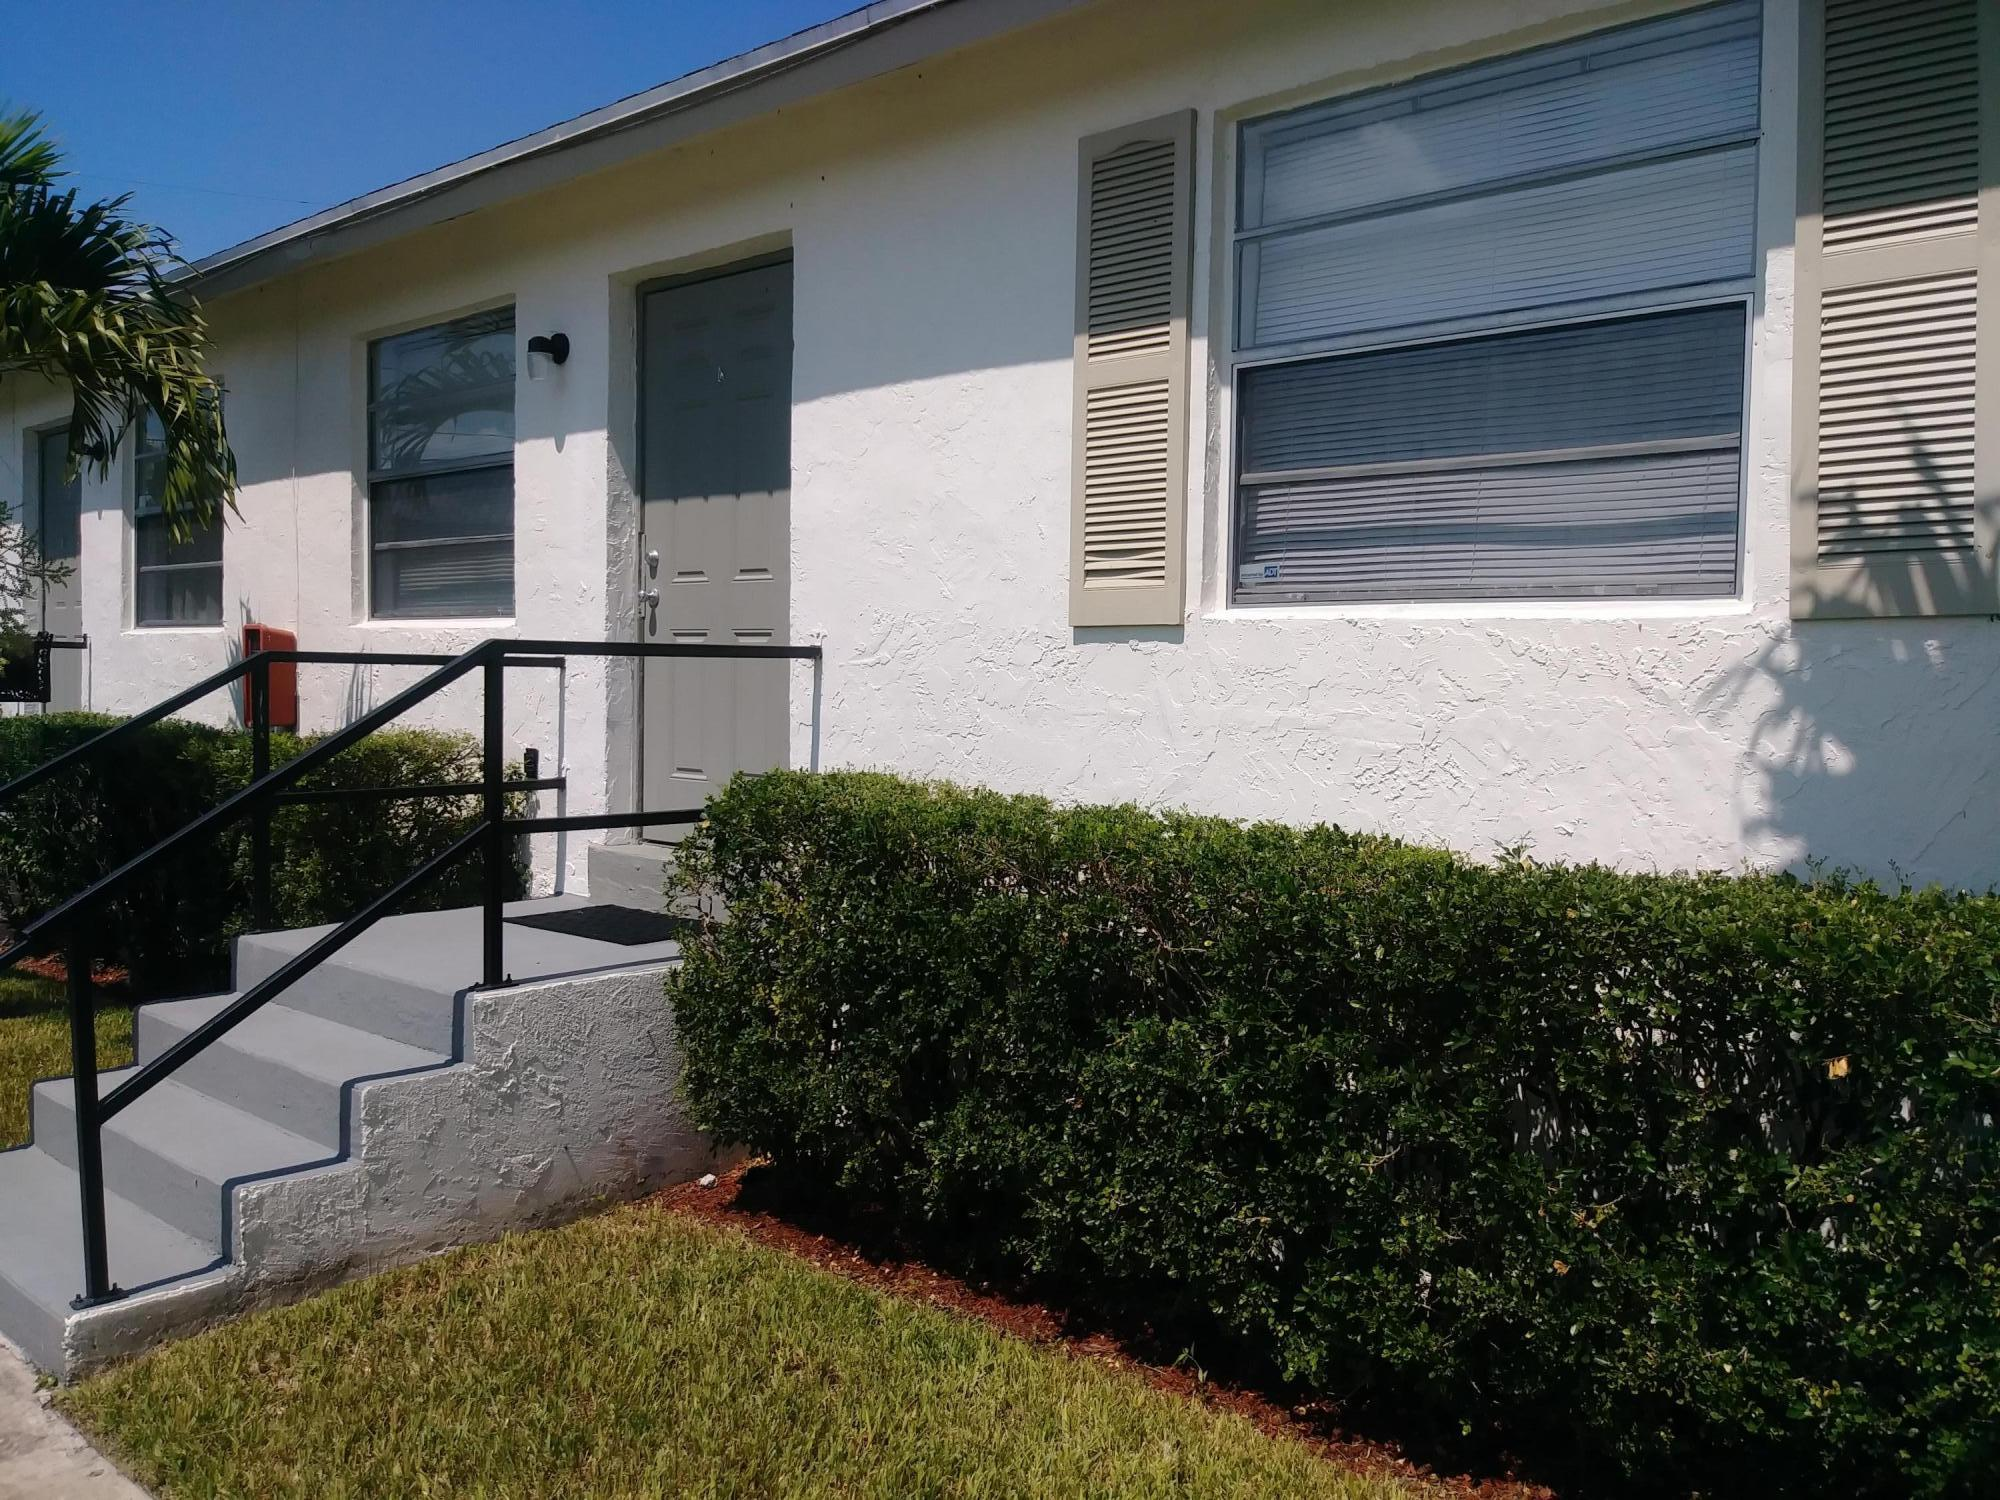 1248 AC Evans Street, Riviera Beach, Florida 33404, 2 Bedrooms Bedrooms, ,1 BathroomBathrooms,Rental,For Rent,AC Evans,RX-10533511